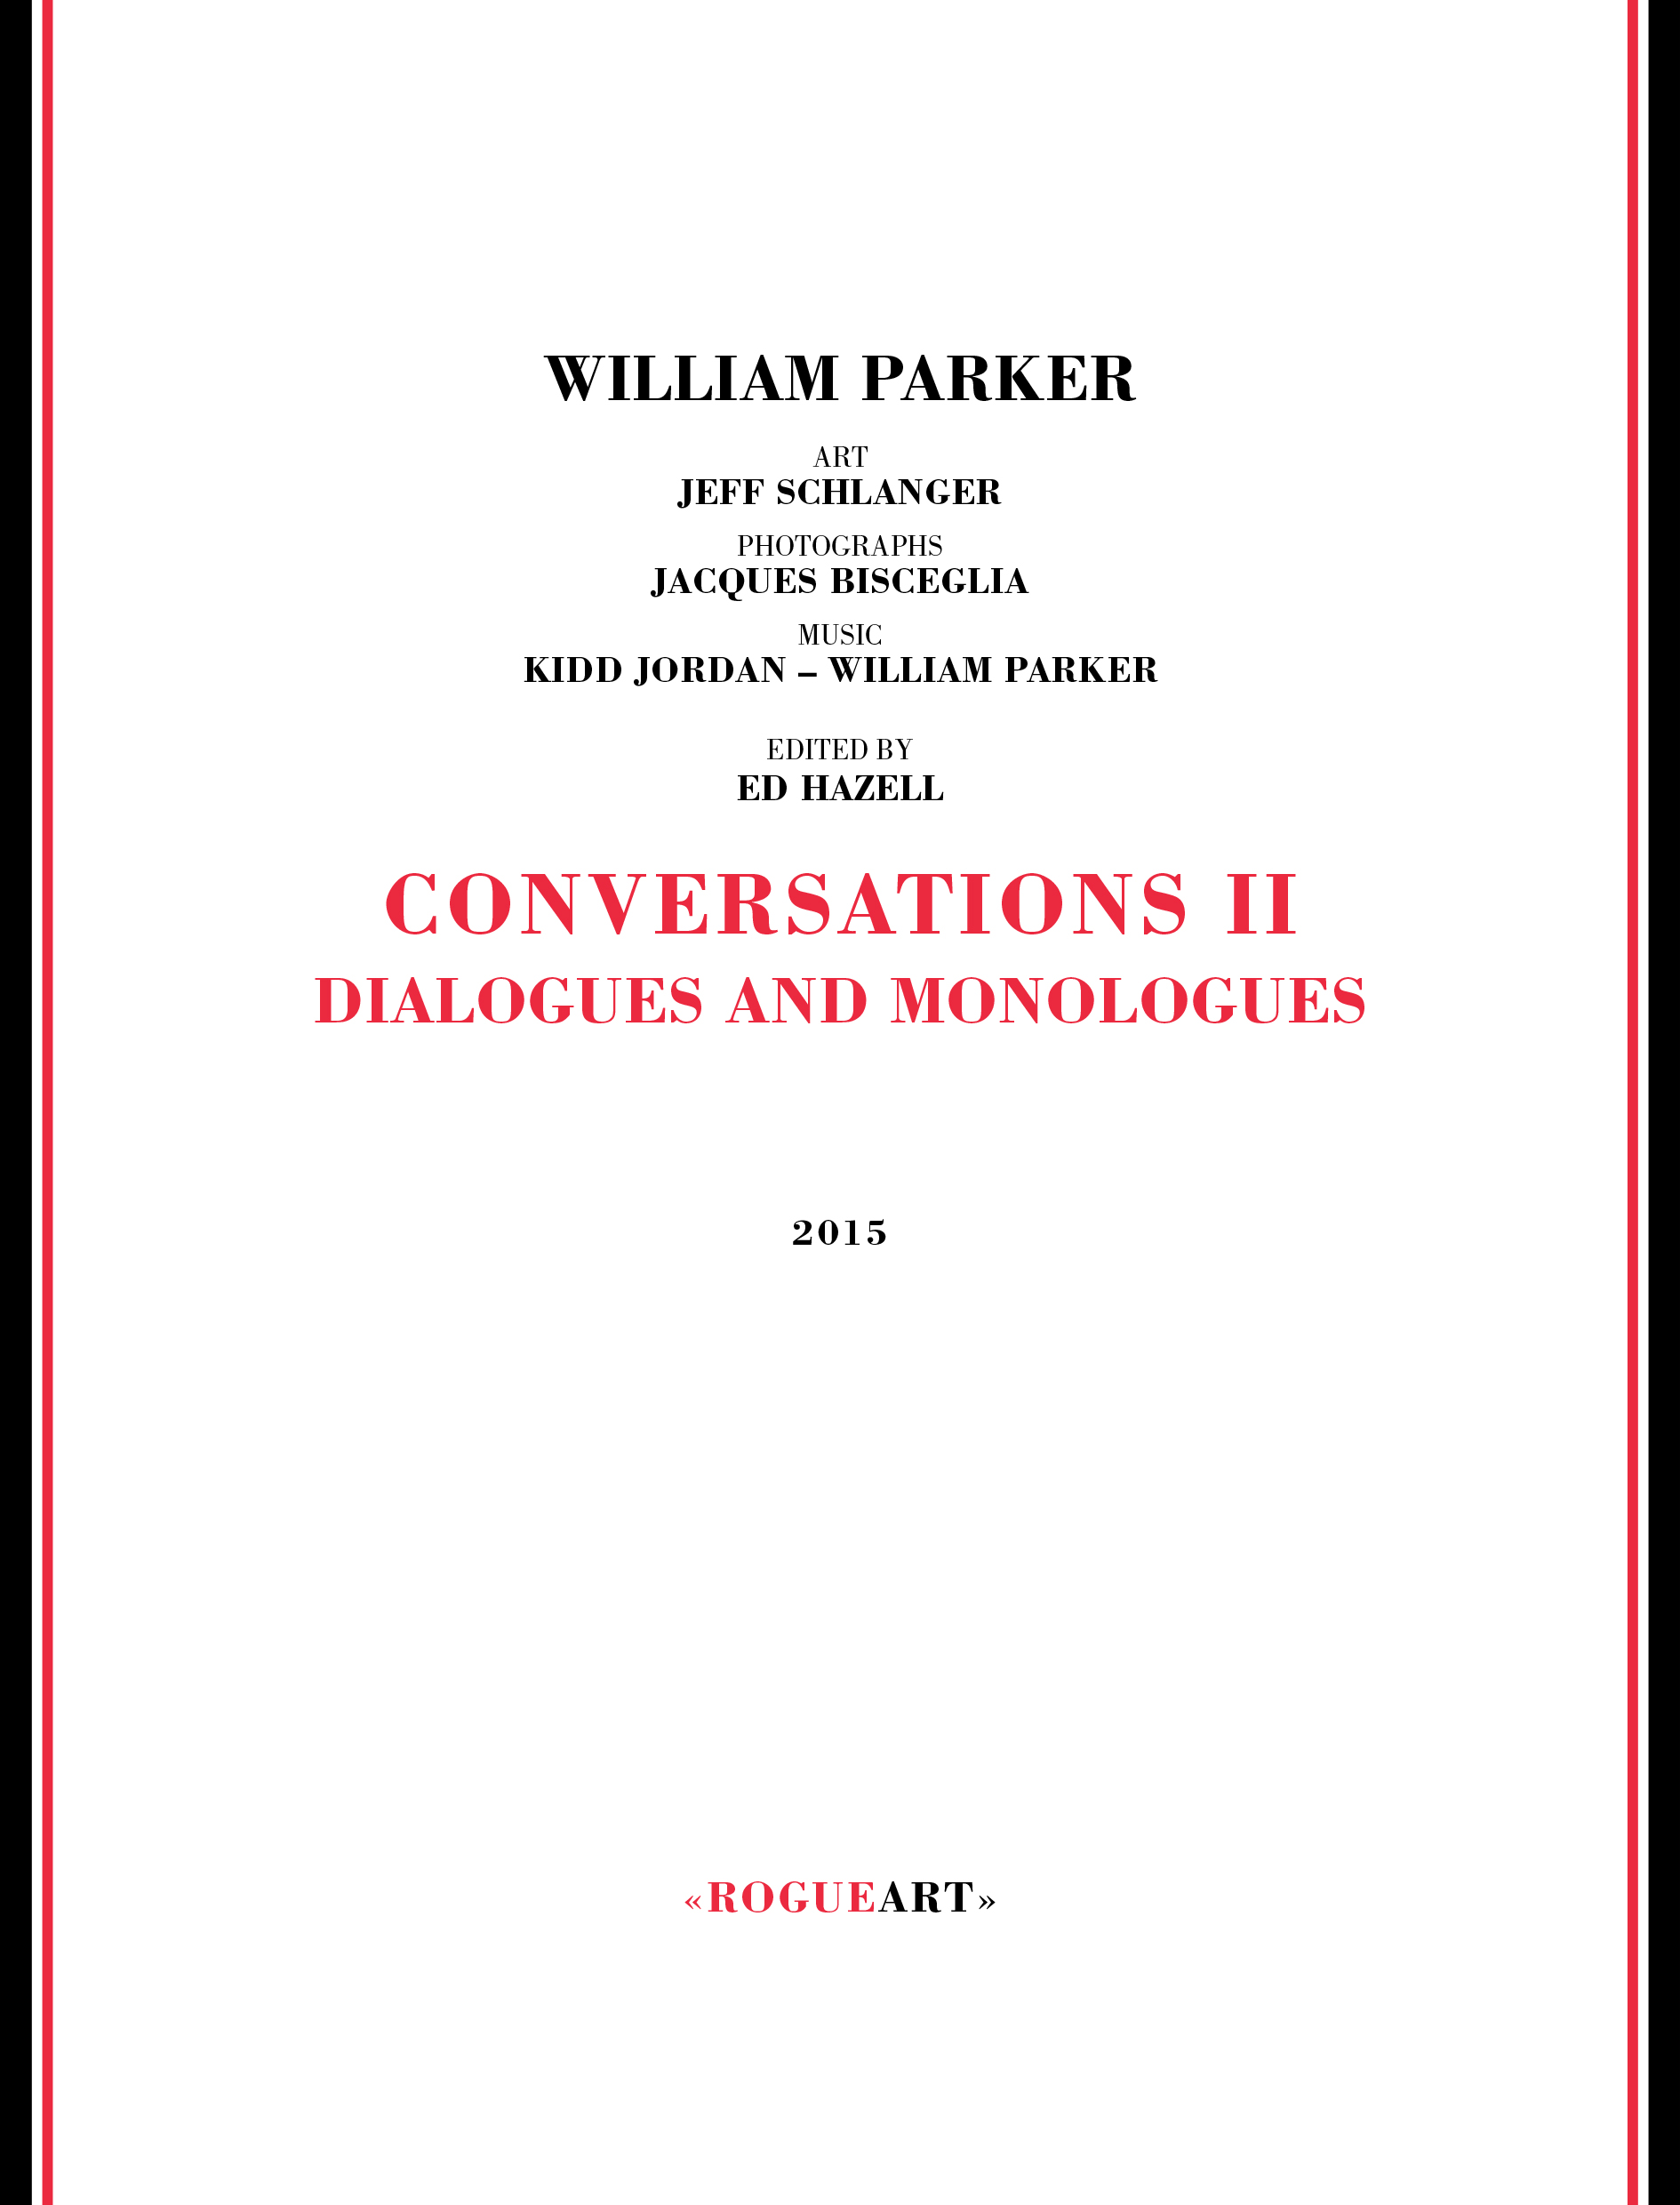 Front cover of the book CONVERSATIONS II - MONOLOGUES AND DIALOGUES